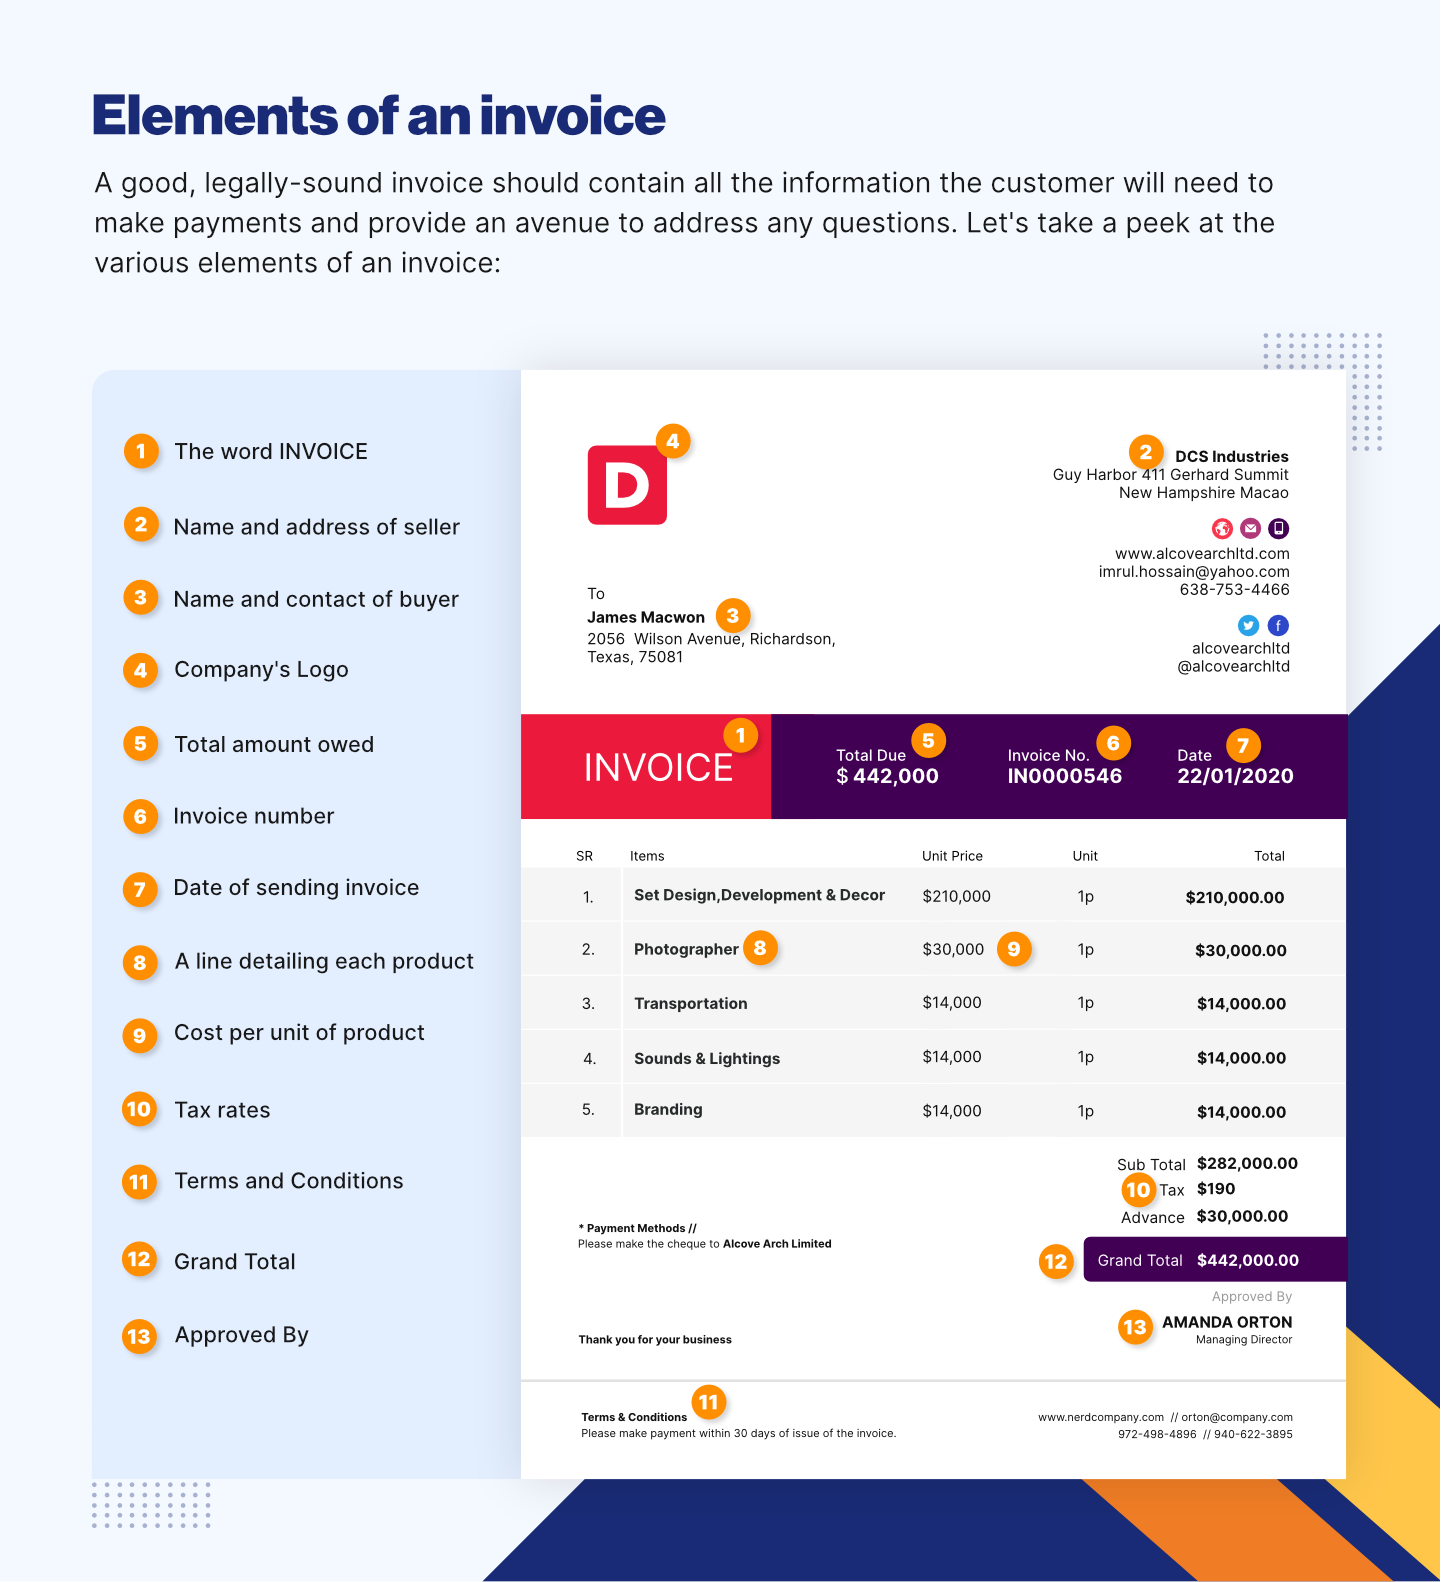 Essential Elements of an Invoice